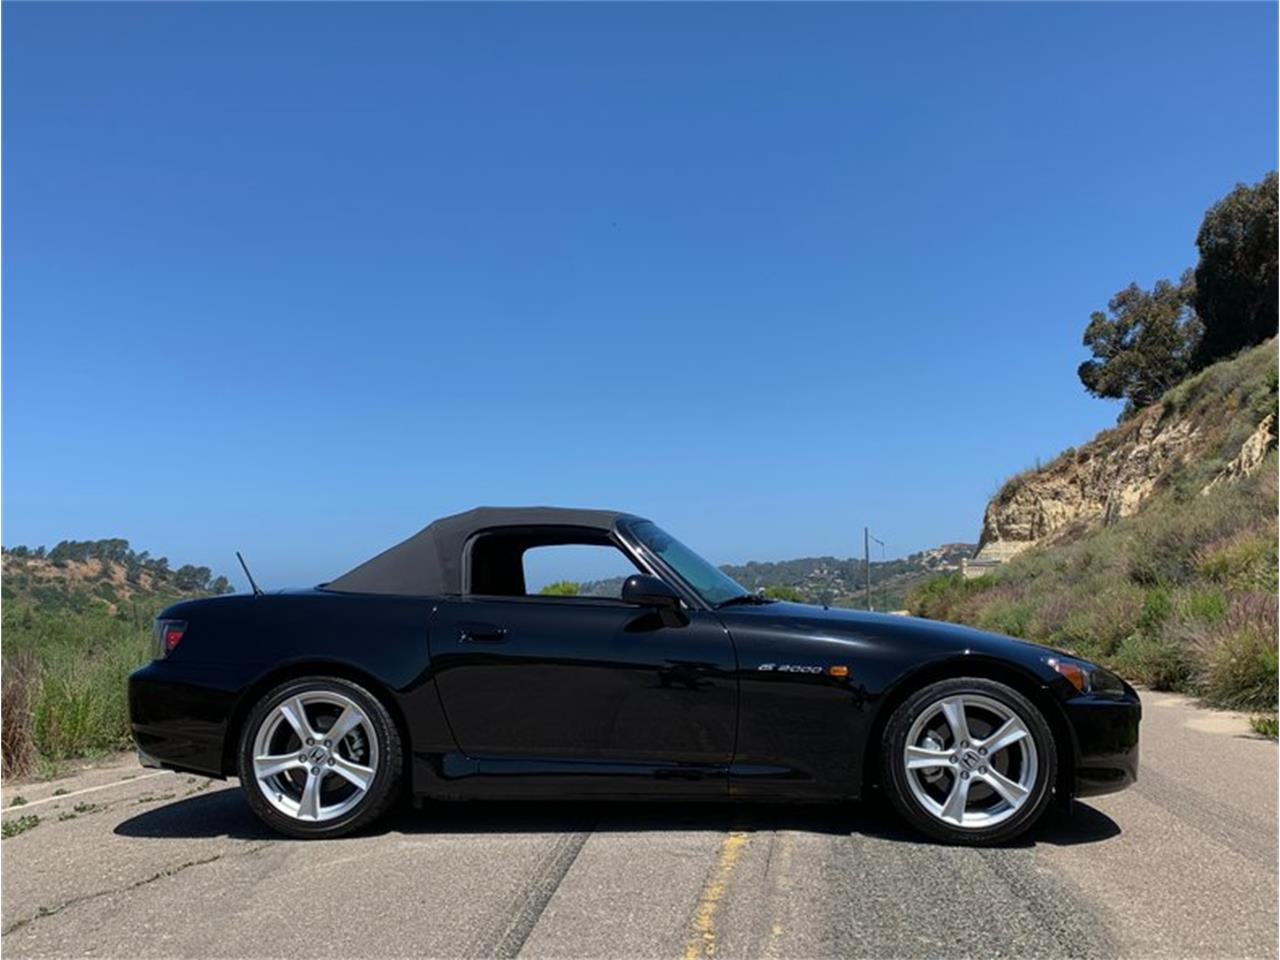 2009 Honda S2000 for sale in San Diego, CA – photo 22